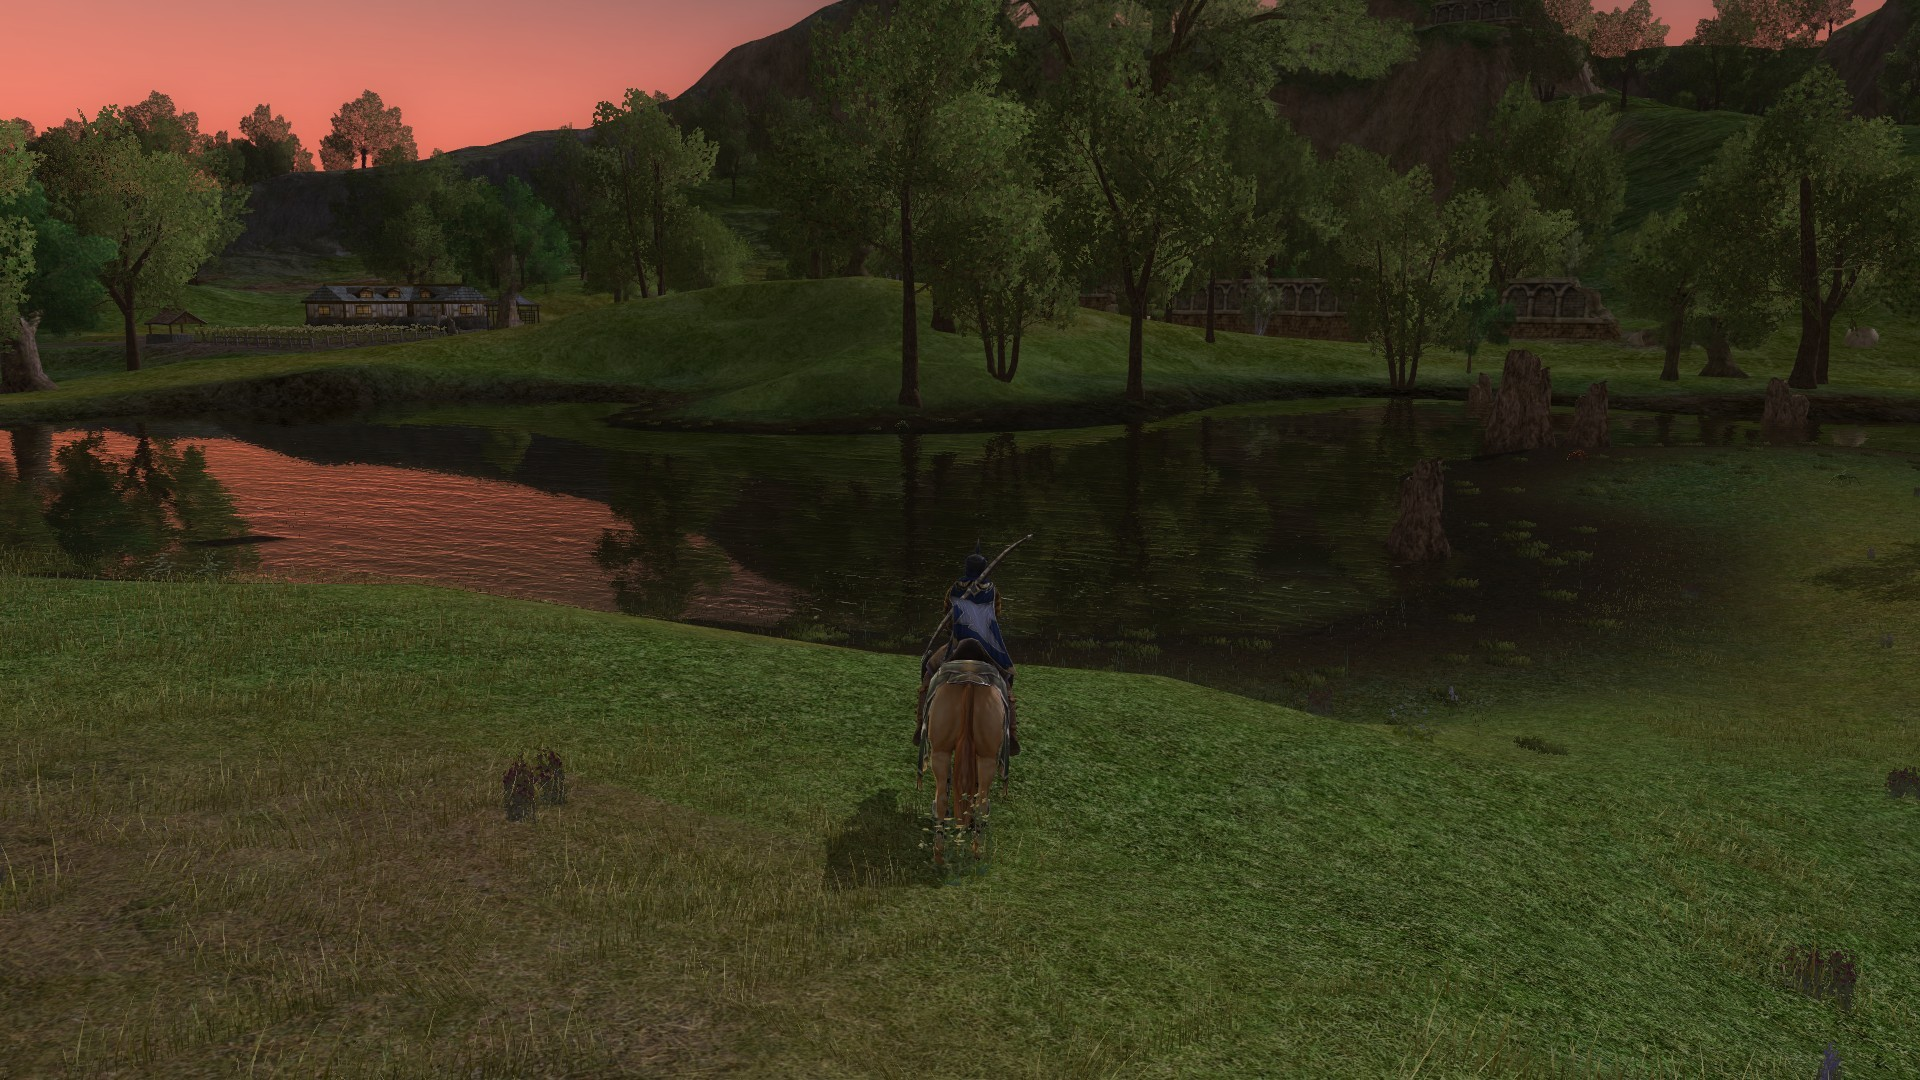 Lord of the Rings Online - Amoment of peace